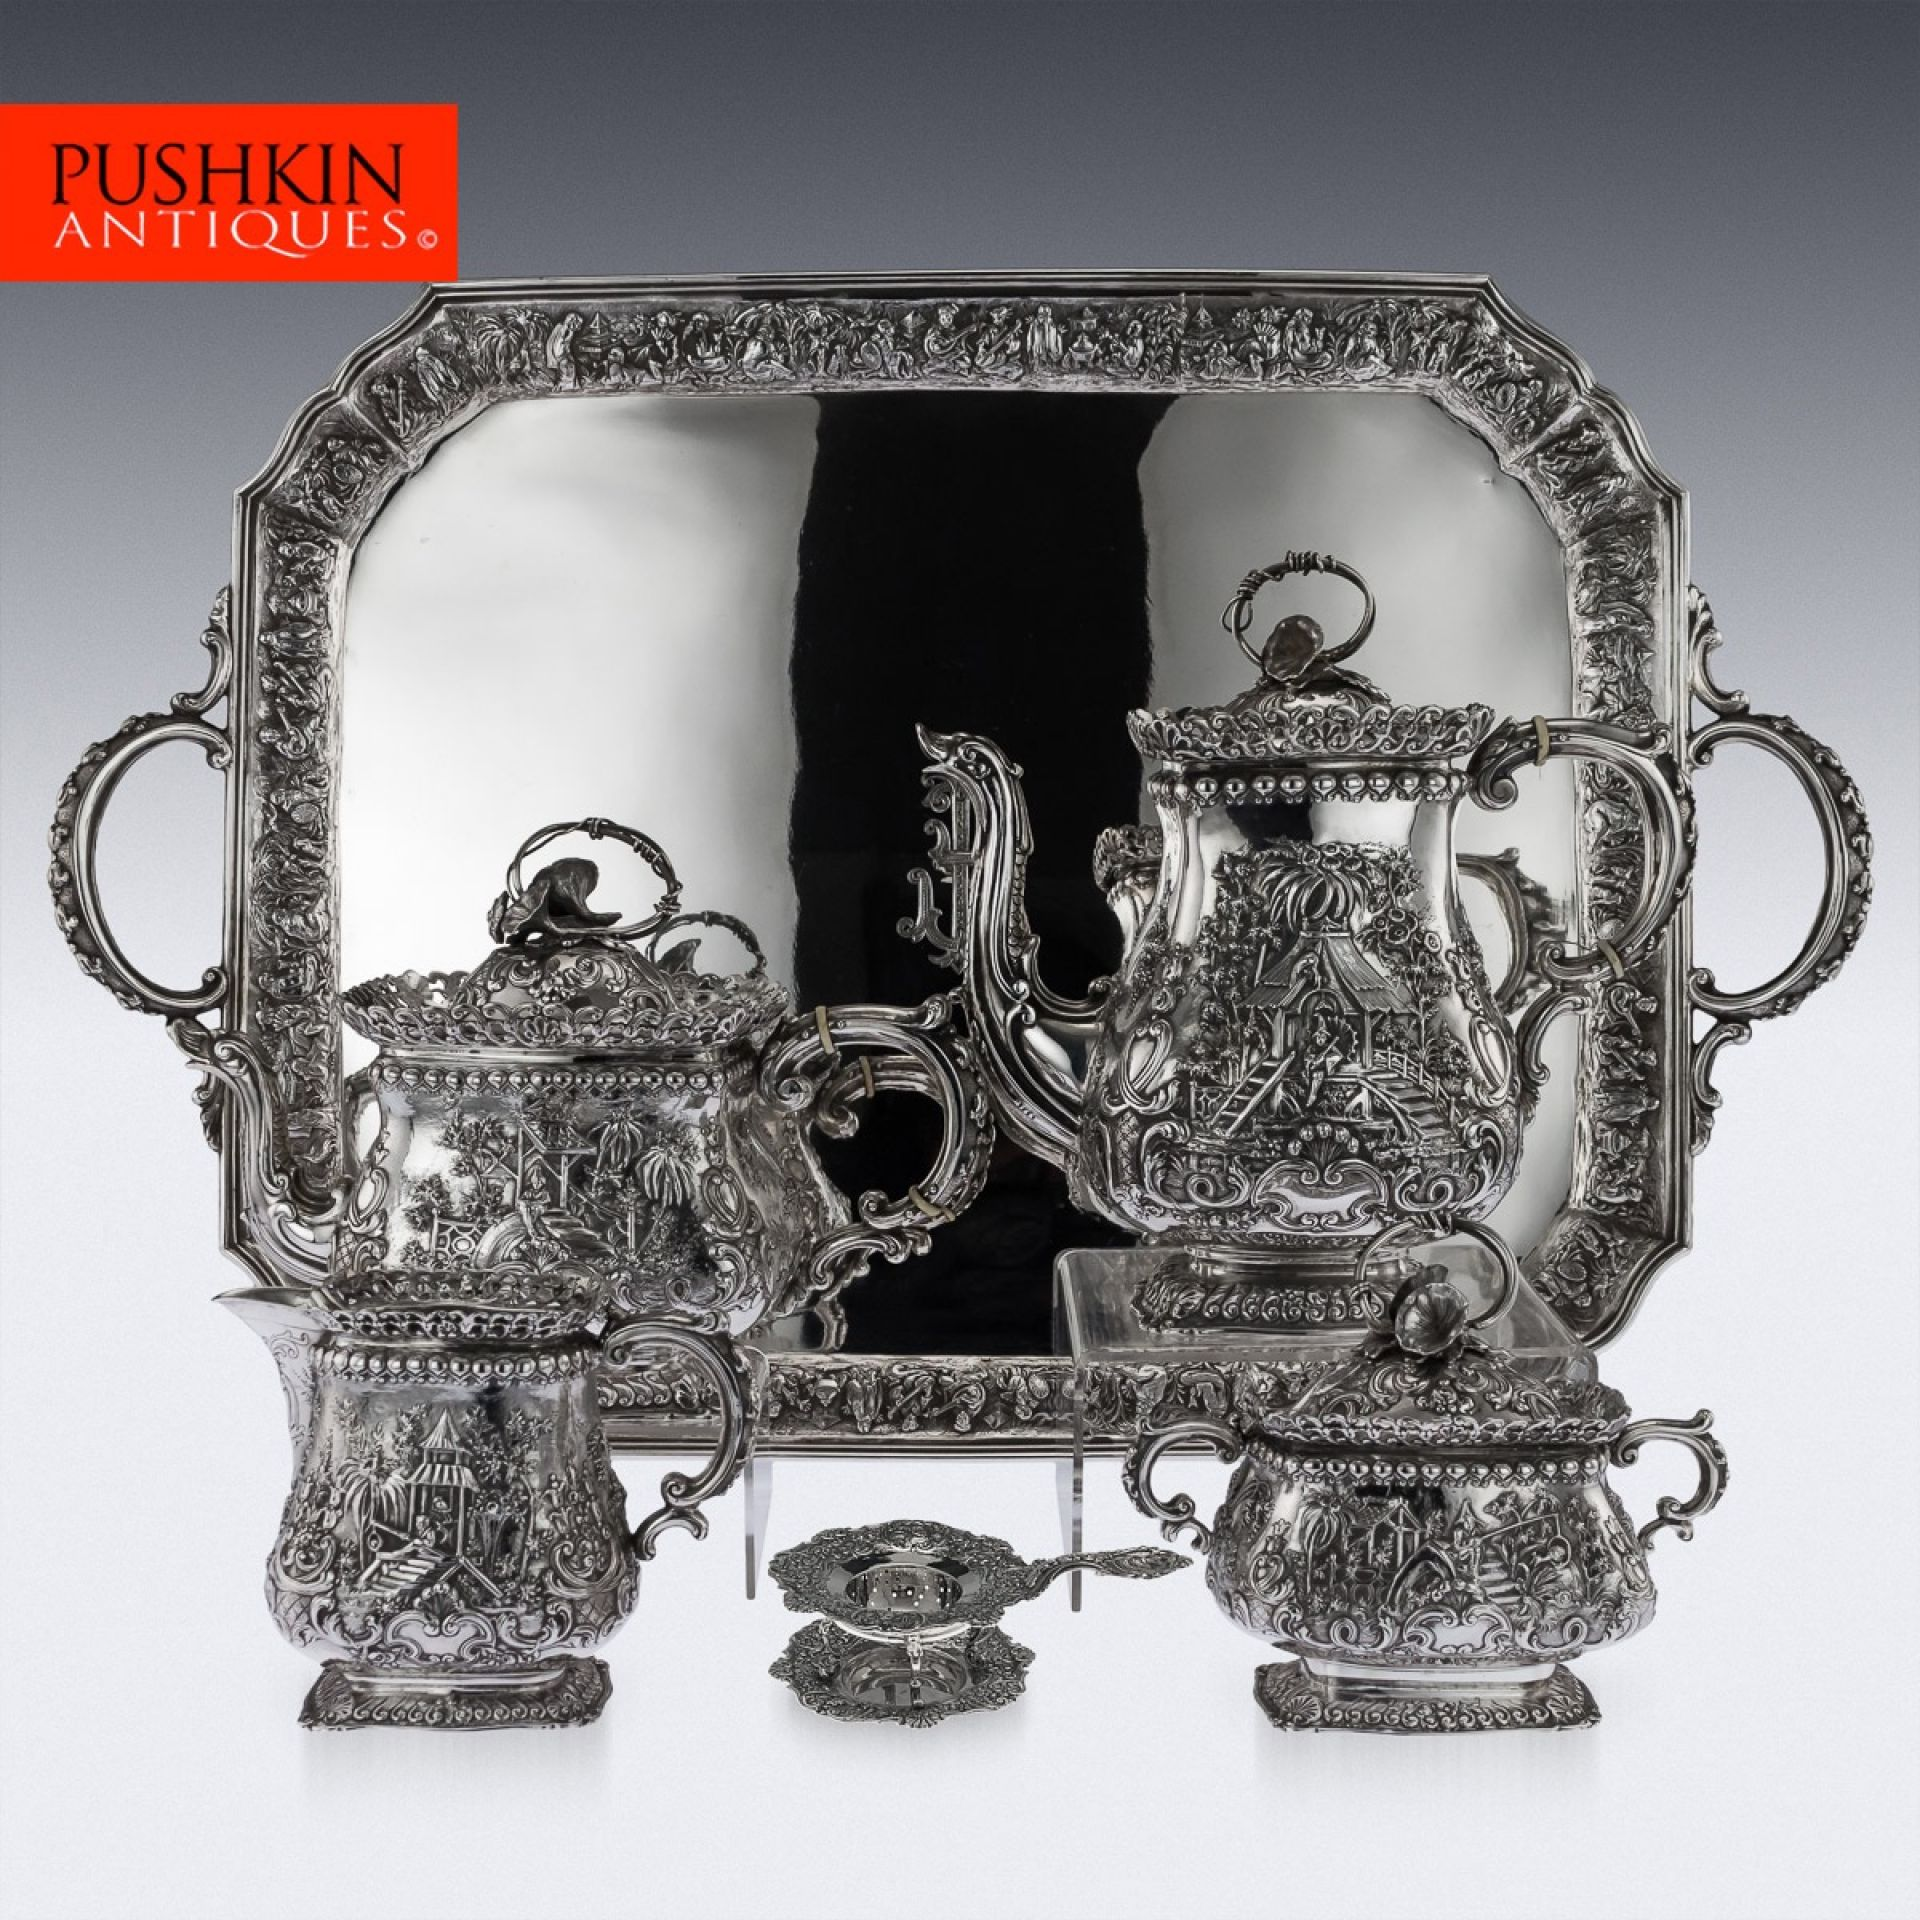 ANTIQUE 19thC GERMAN SOLID SILVER CHINESE STYLE TEA SERVICE c.1890